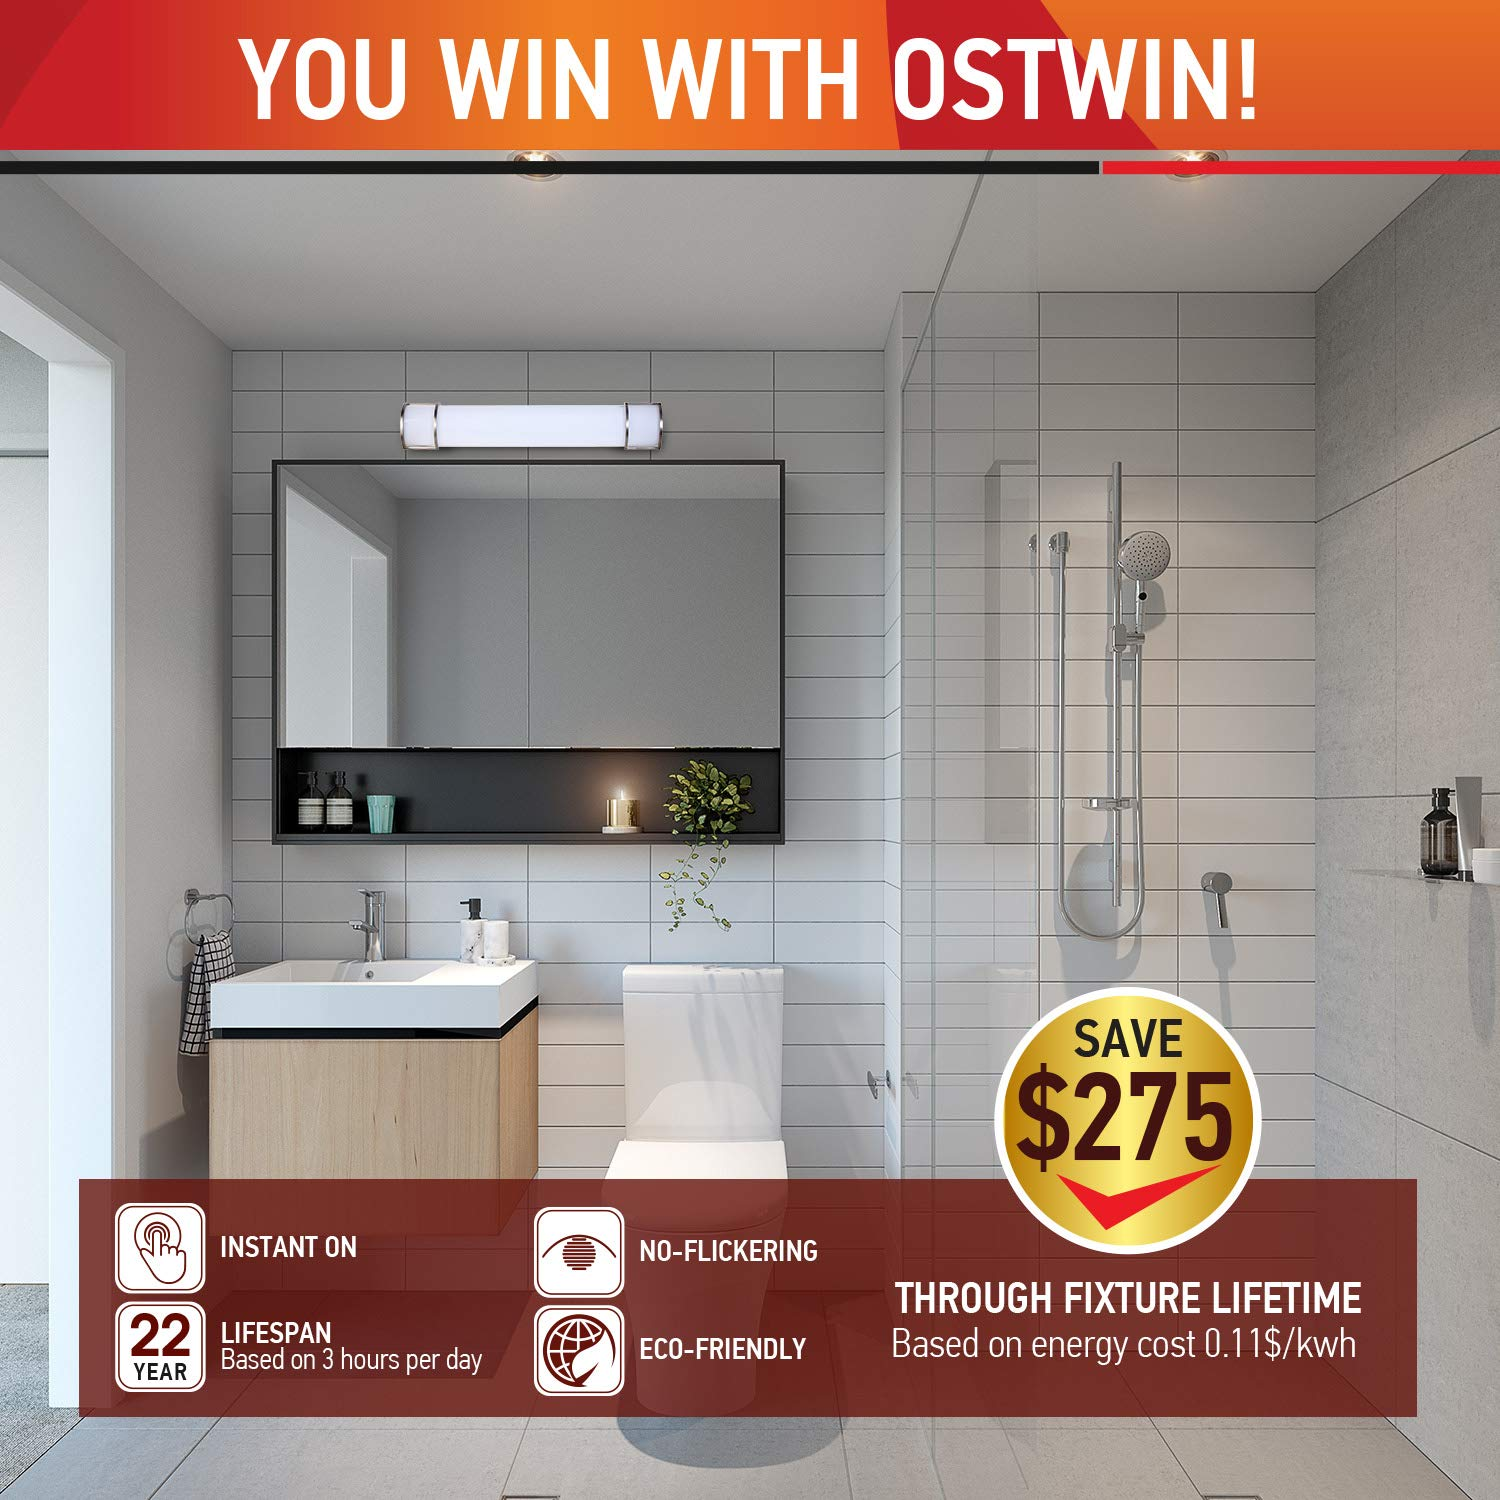 OSTWIN 24 Inch Dimmable LED Linear Bath Vanity Light Bar, Modern Bathroom Vanity Light Fixture 25W 5000K Daylight, Vertical or Horizontal Tube, Brushed Nickel Finish(2 Pack) ETL&Energy Star Listed by OSTWIN (Image #6)